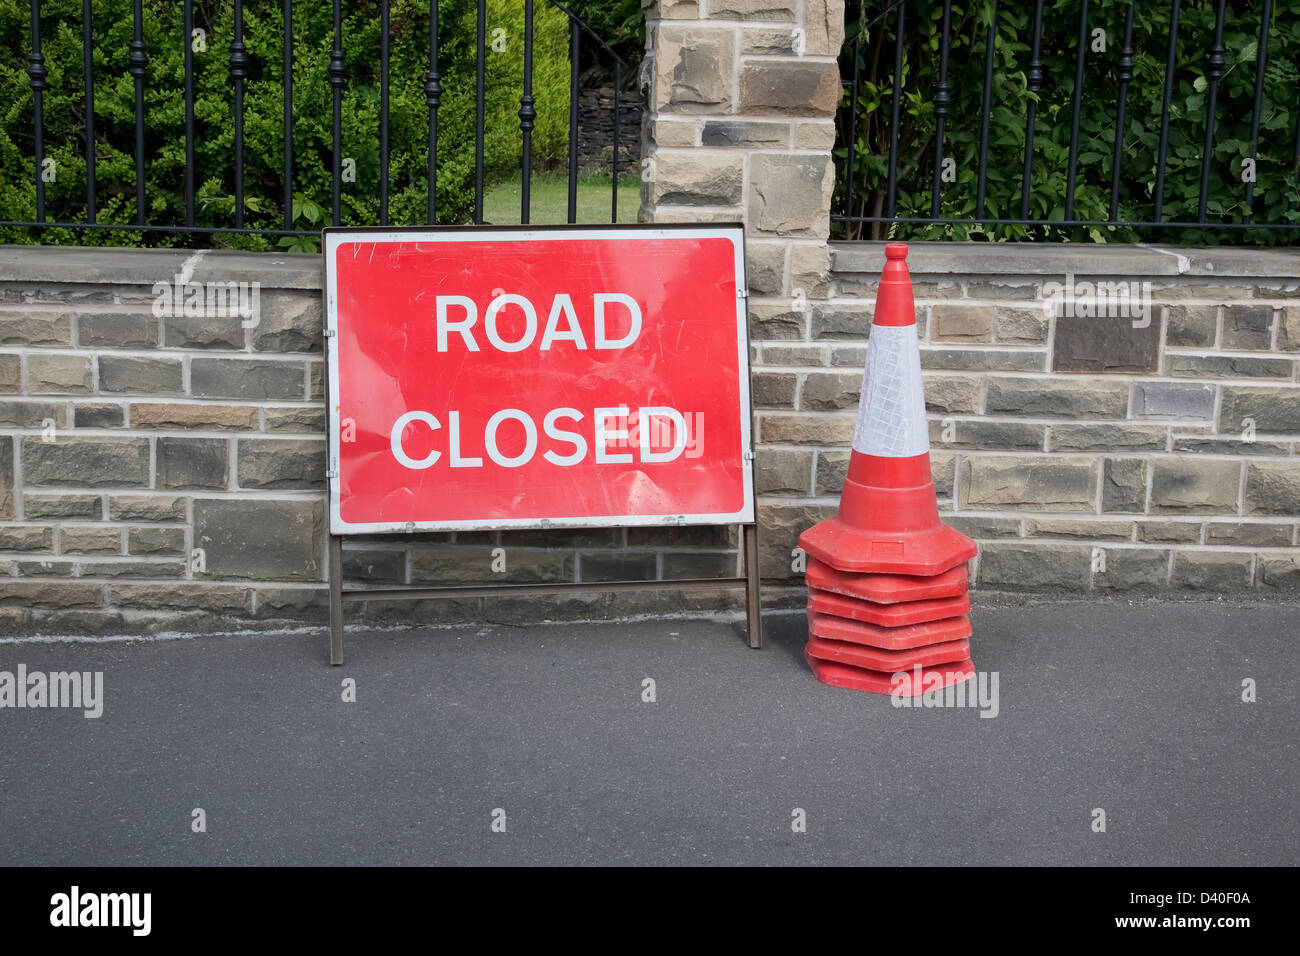 Road Closed sign and traffic cones in the UK - Stock Image